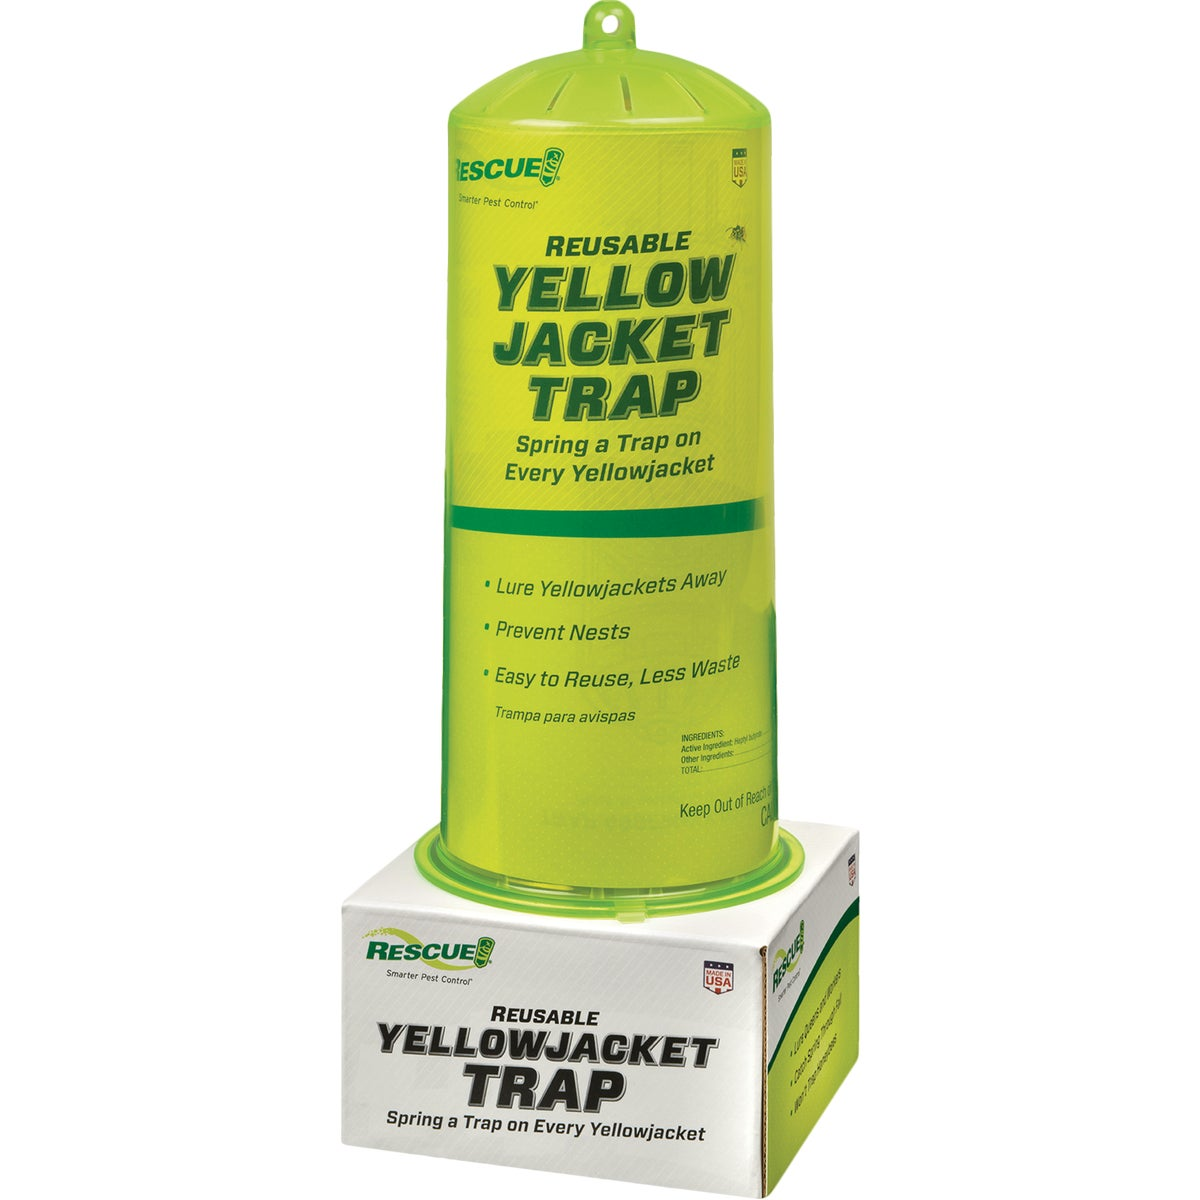 YELLOW JACKET TRAP - YJTR-DT12 by Sterling Intl